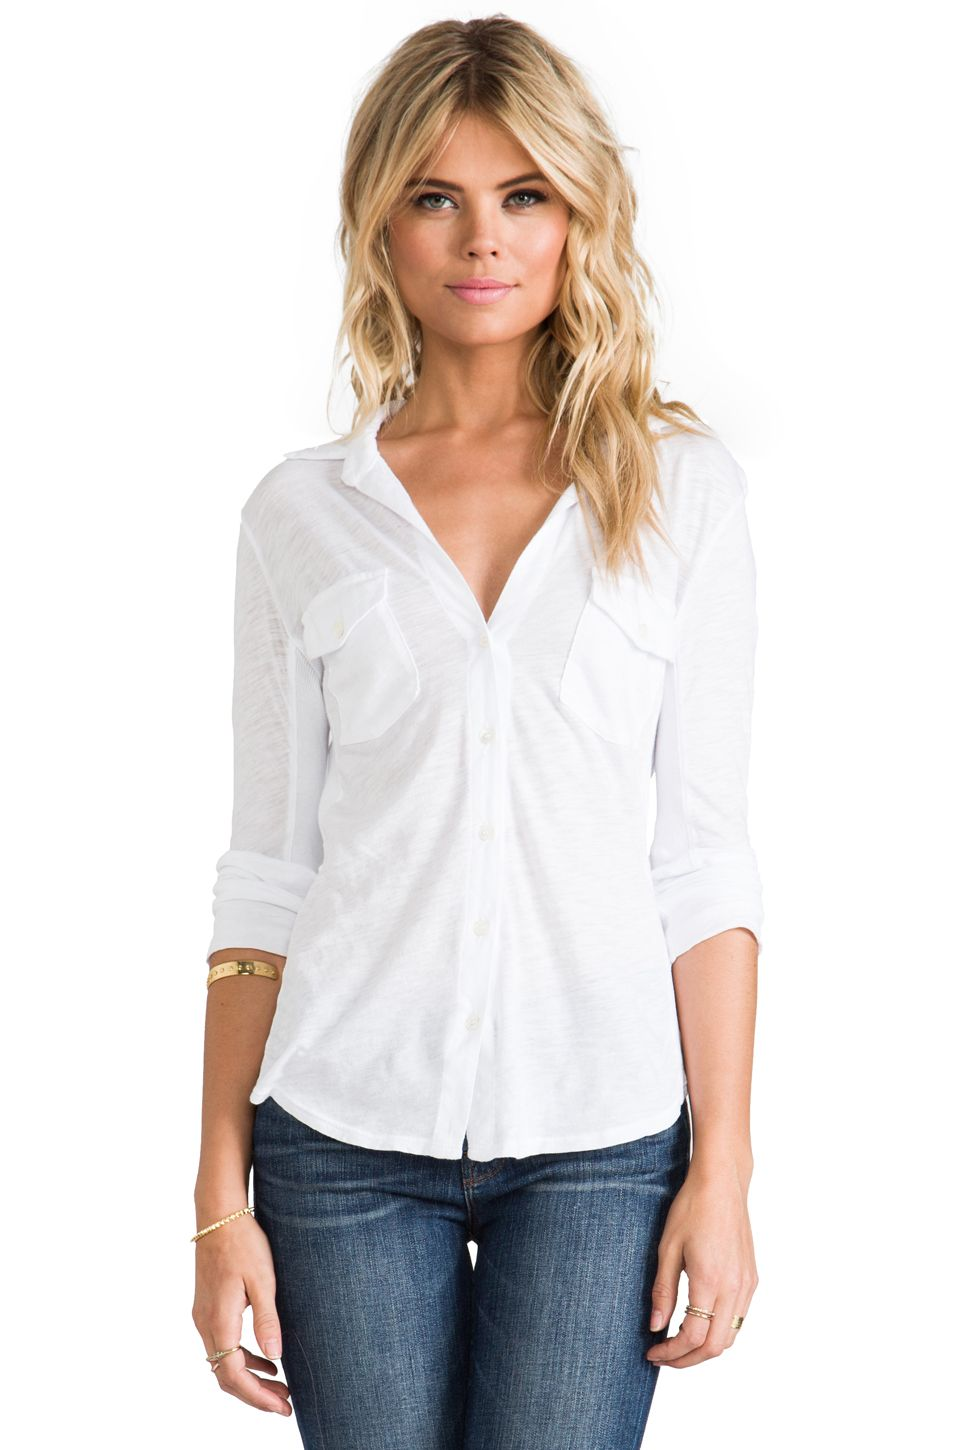 8d61e1af4 James Perse Slub Side Panel Button Front Shirt in White ...